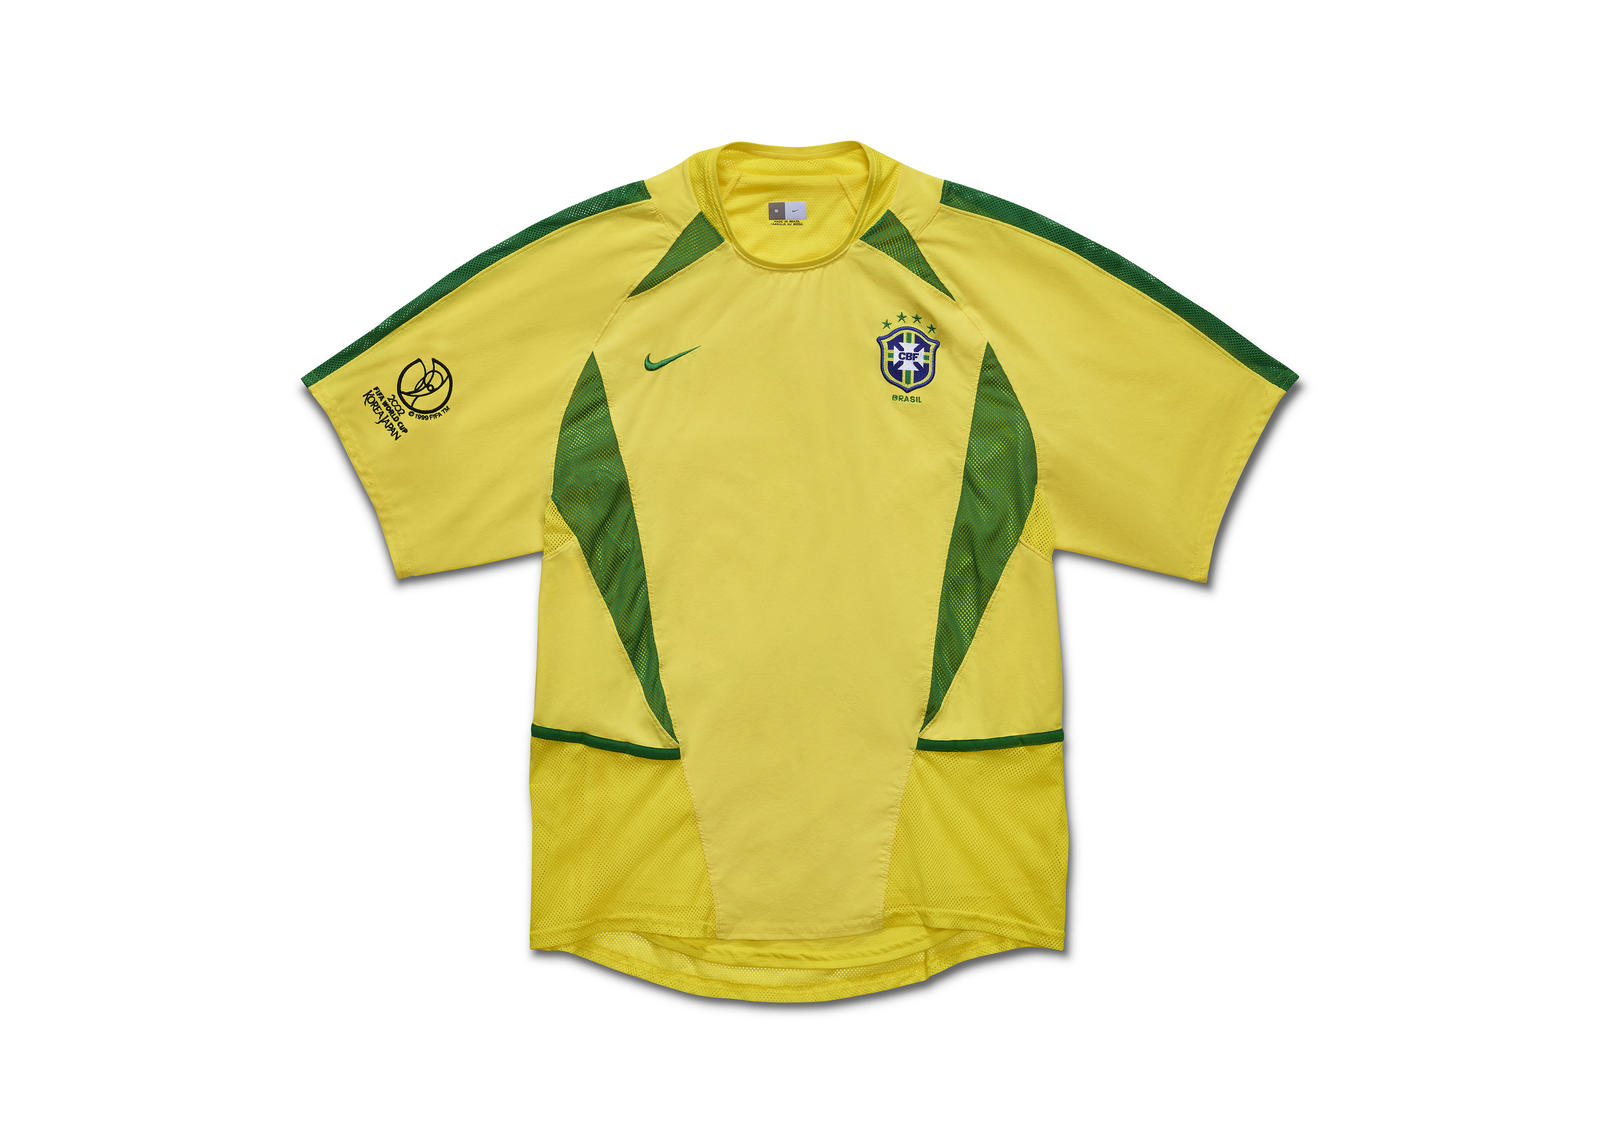 A Retrospective of Brasil's Yellow Jersey 3